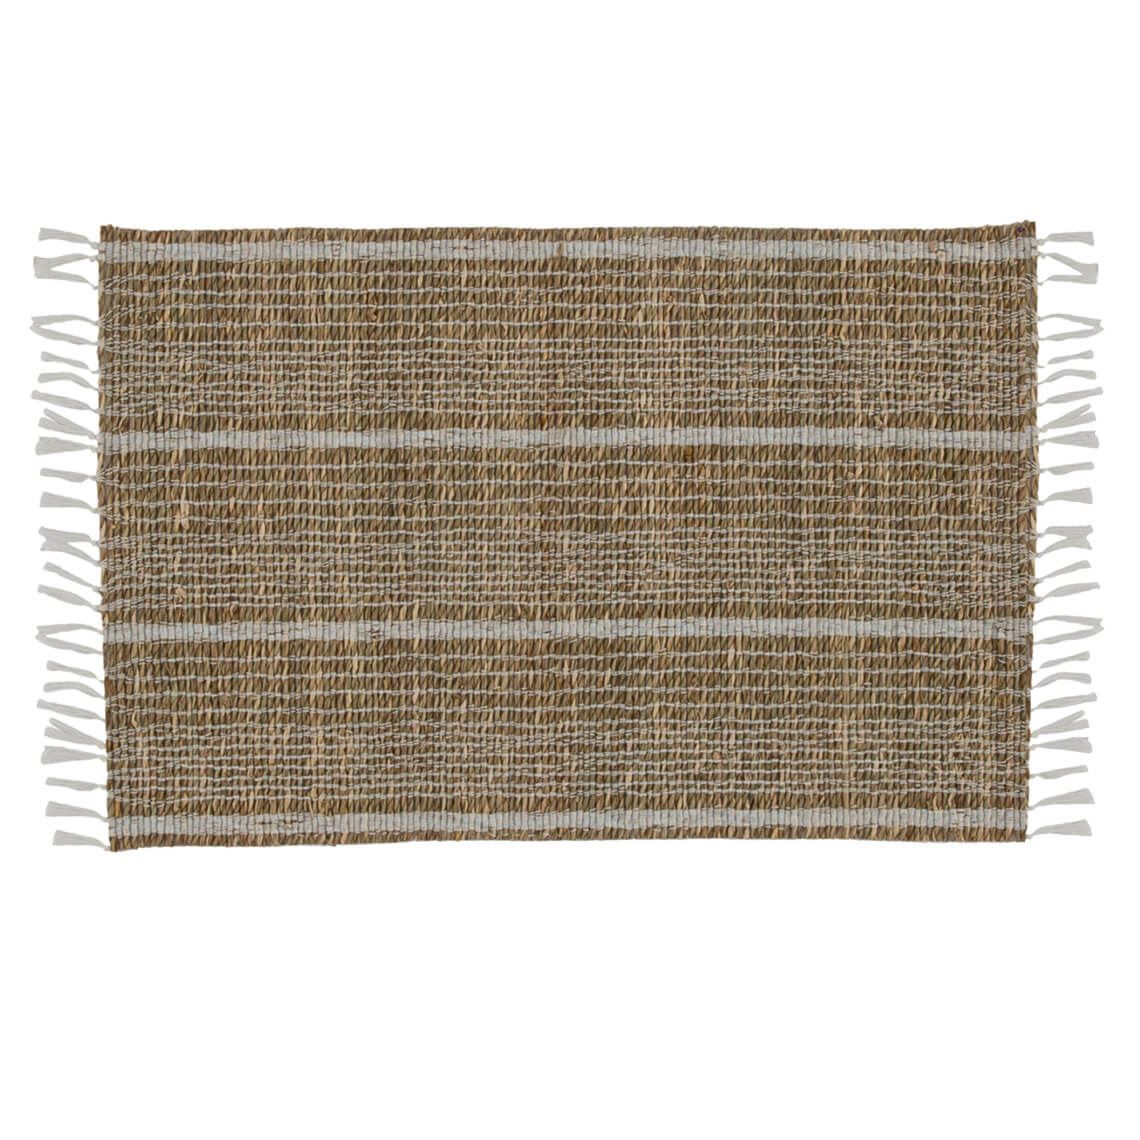 Tierney Placemat Size W 33cm x D 45cm x H 1cm in Natural/White Freedom